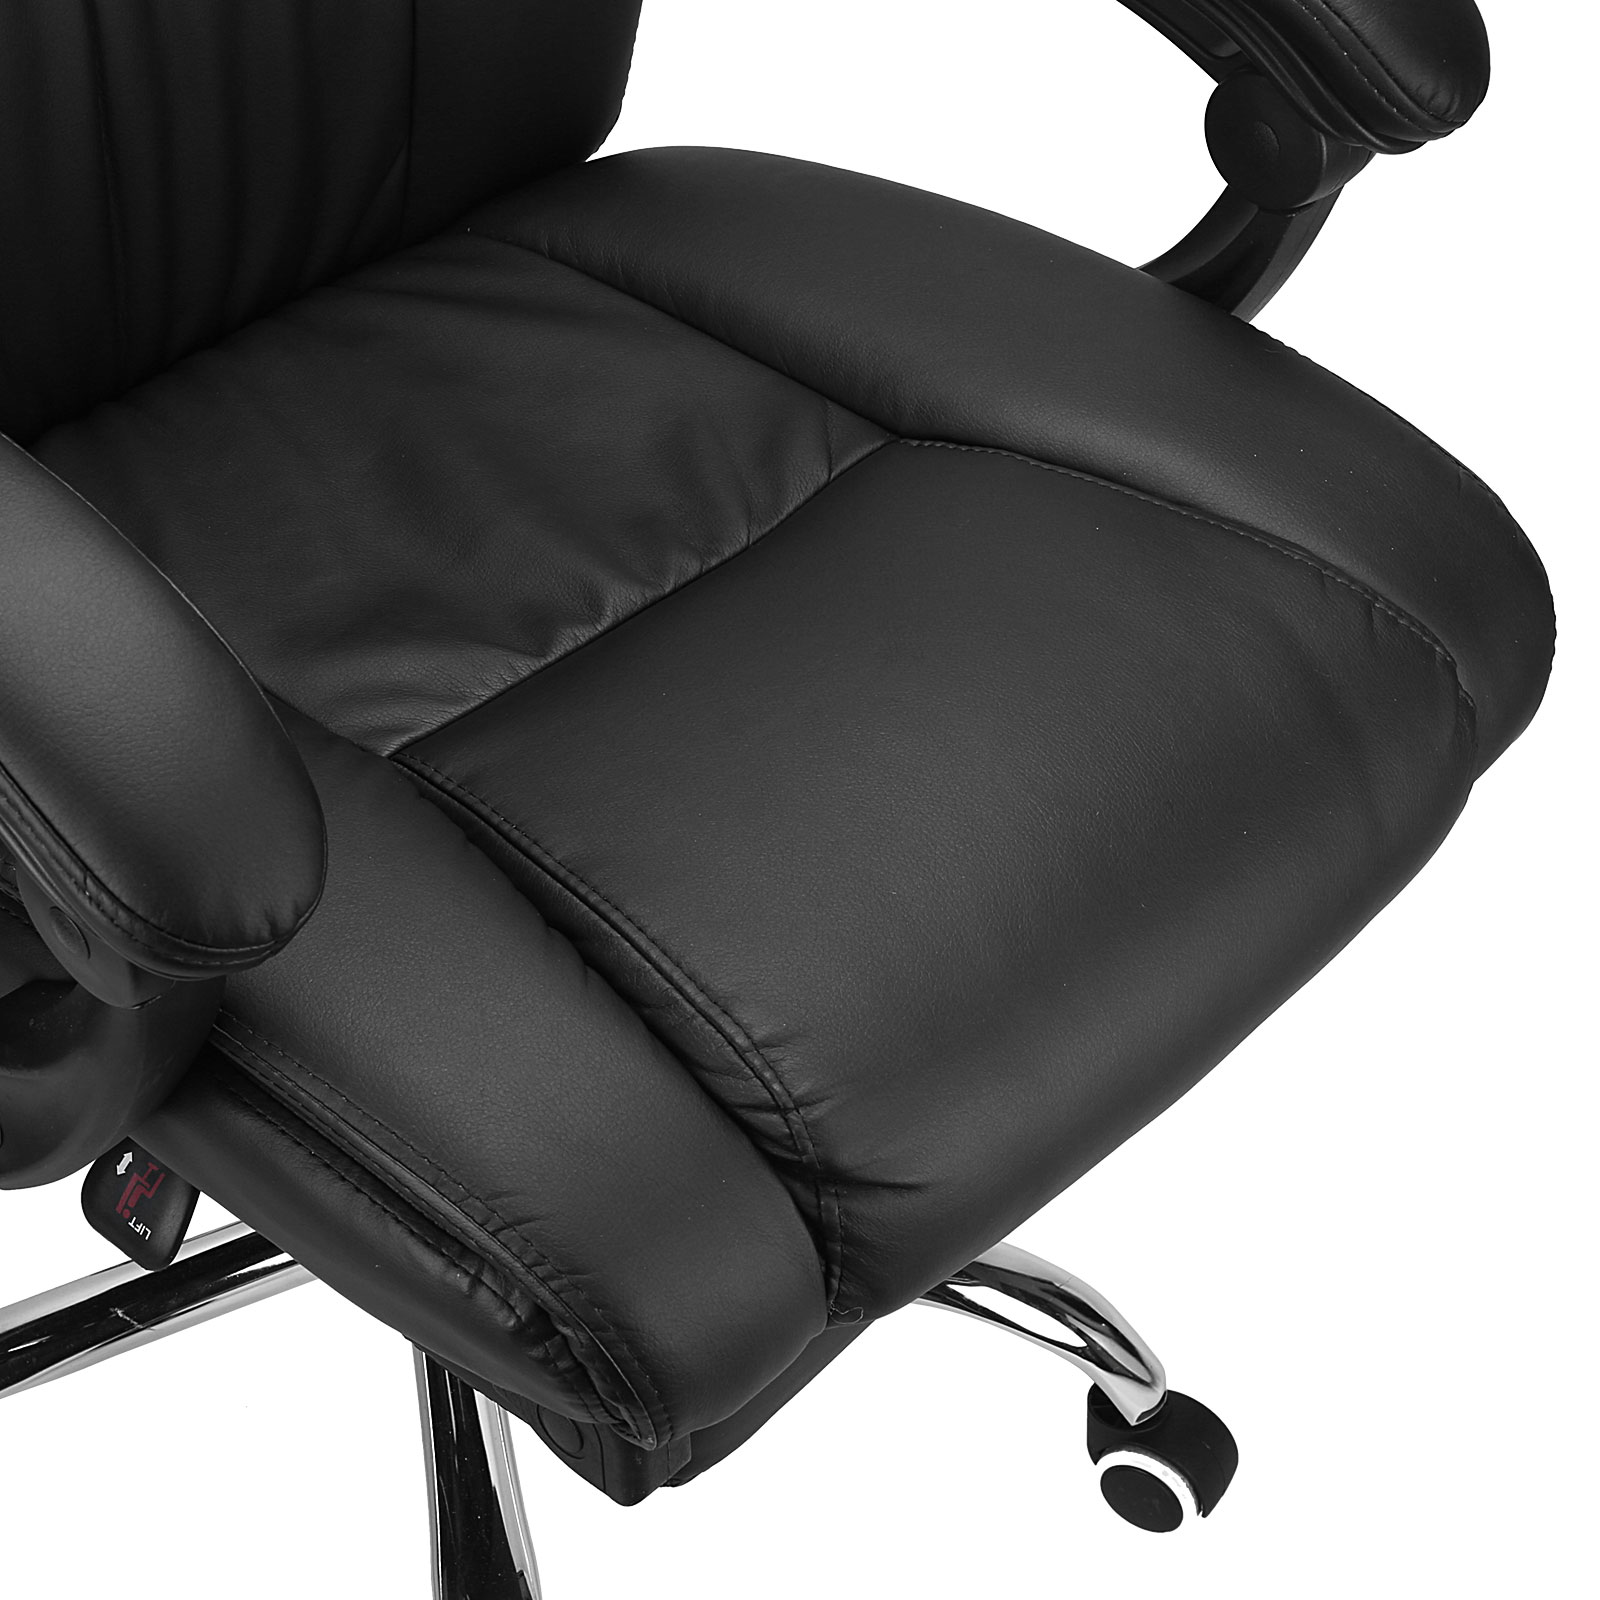 Executive fice Chair Ergonomic High Back Reclining Leather